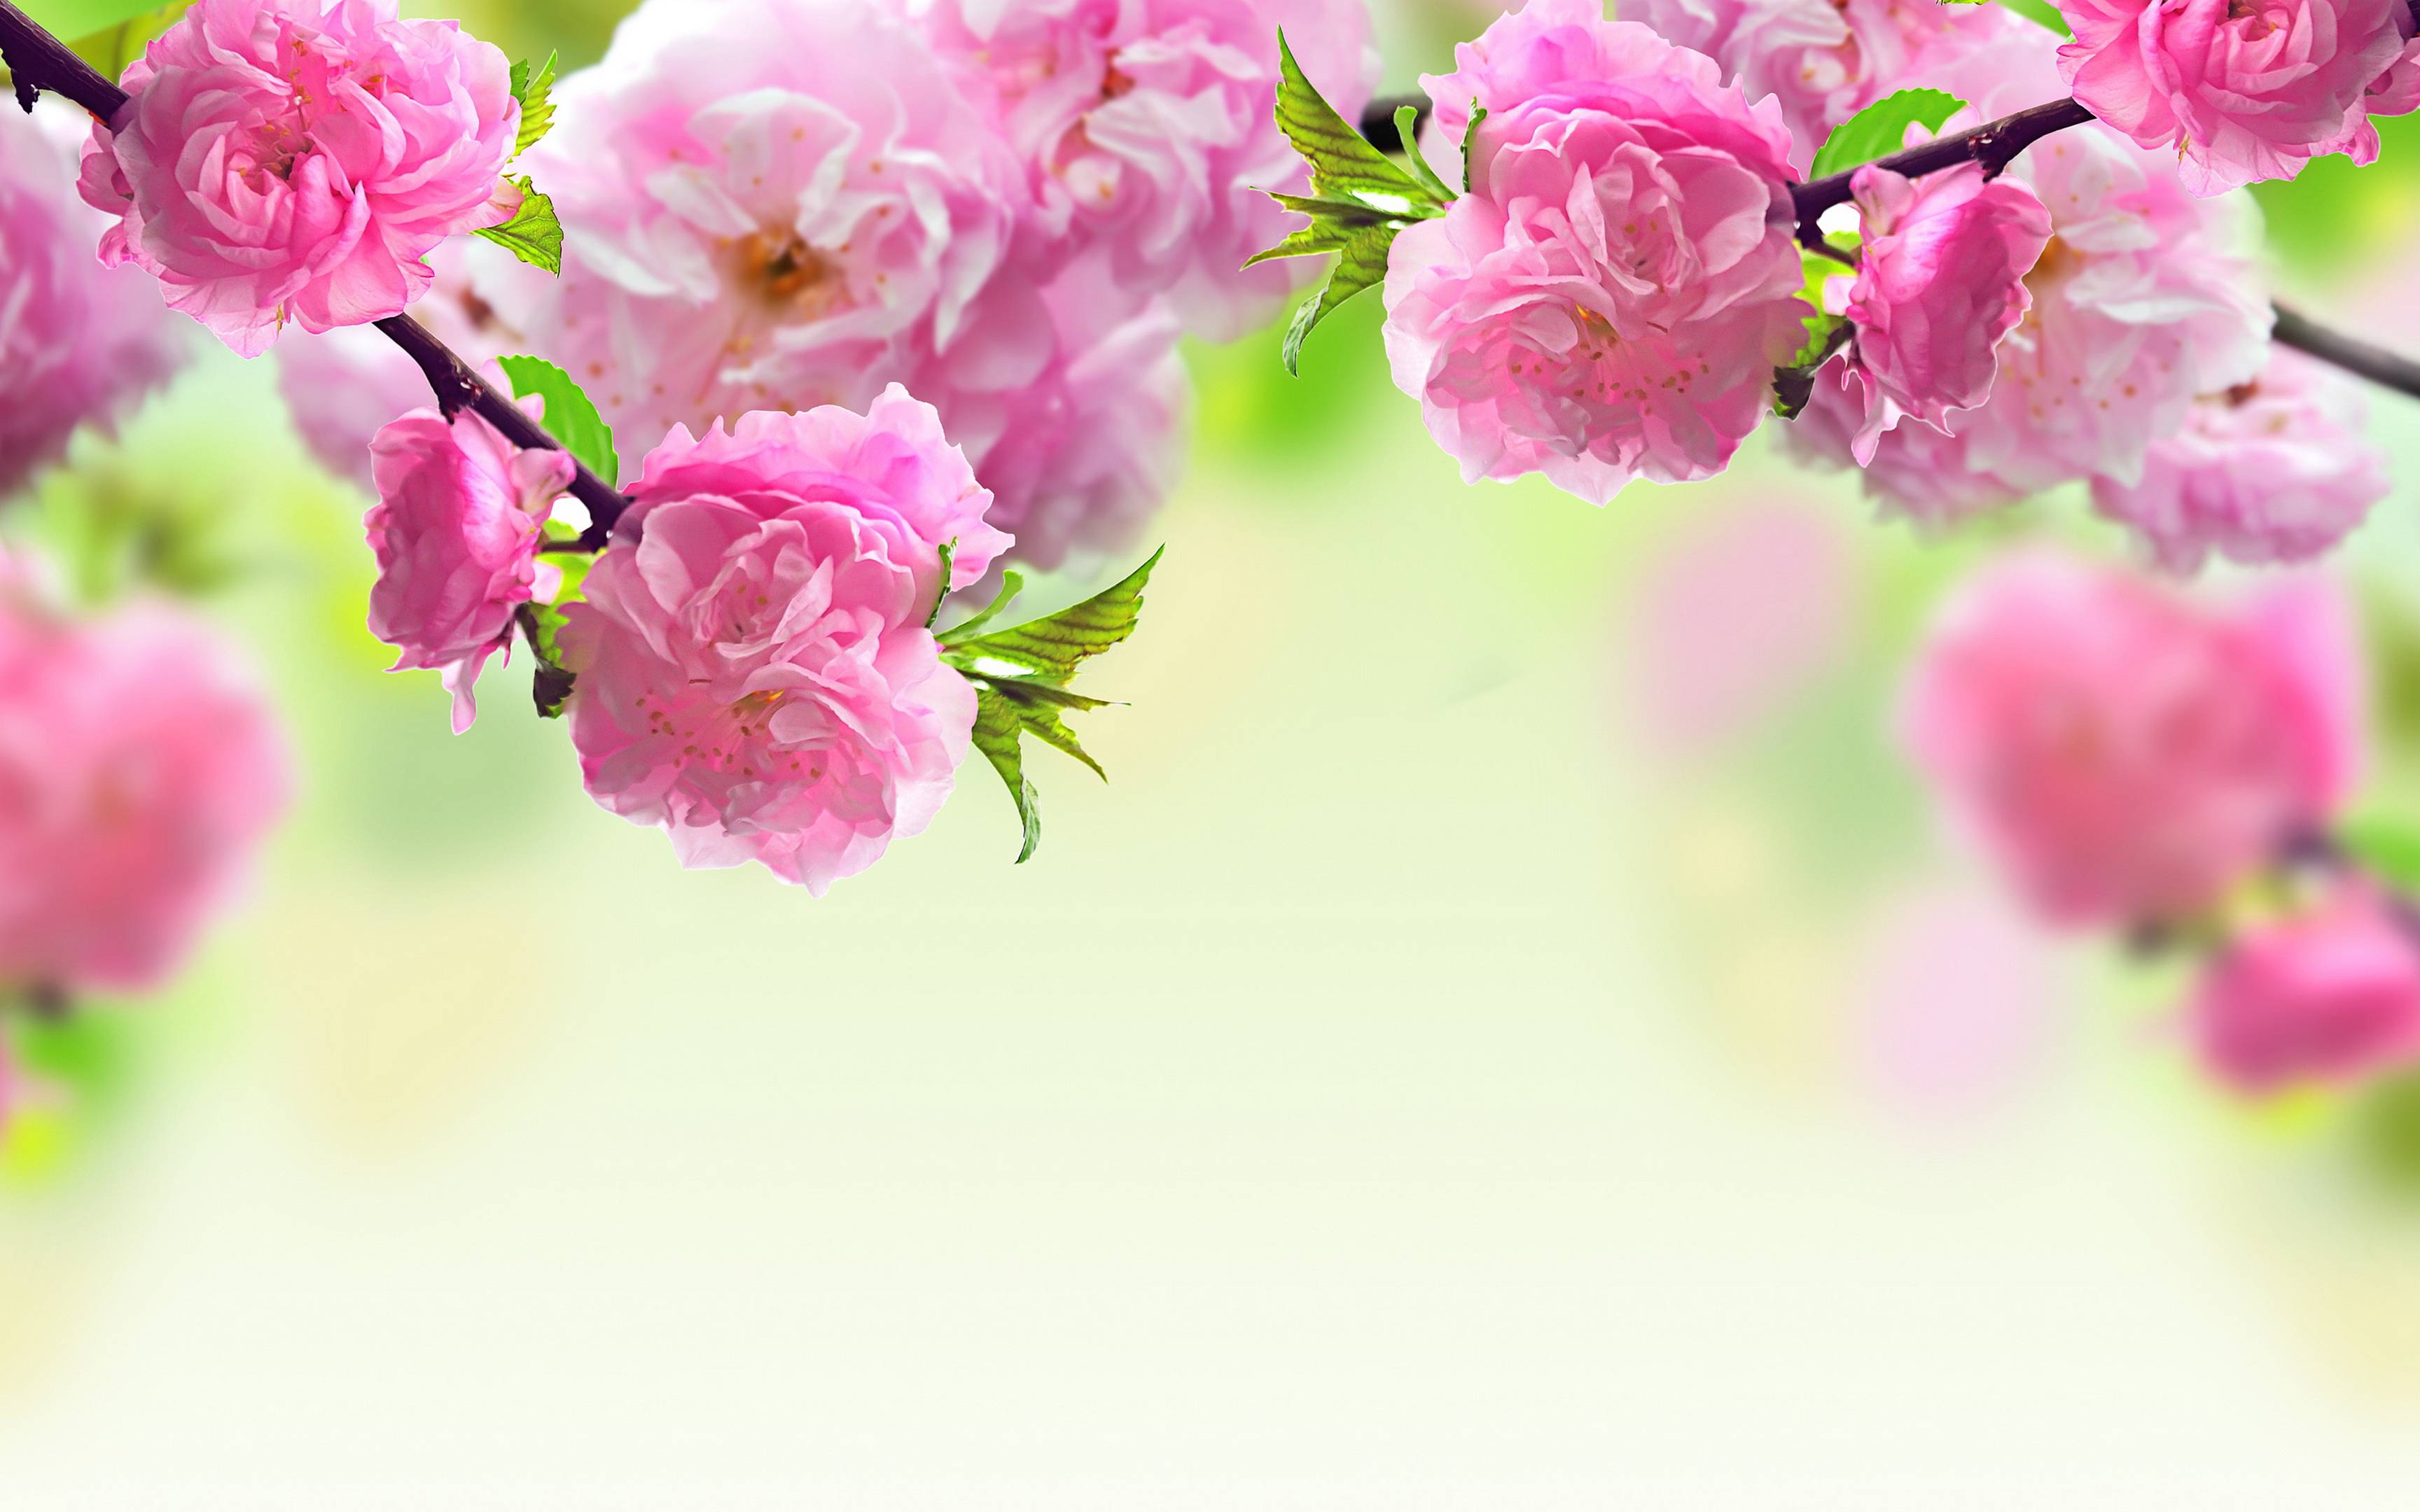 Spring Flower Wallpaper Backgrounds 3456x2160